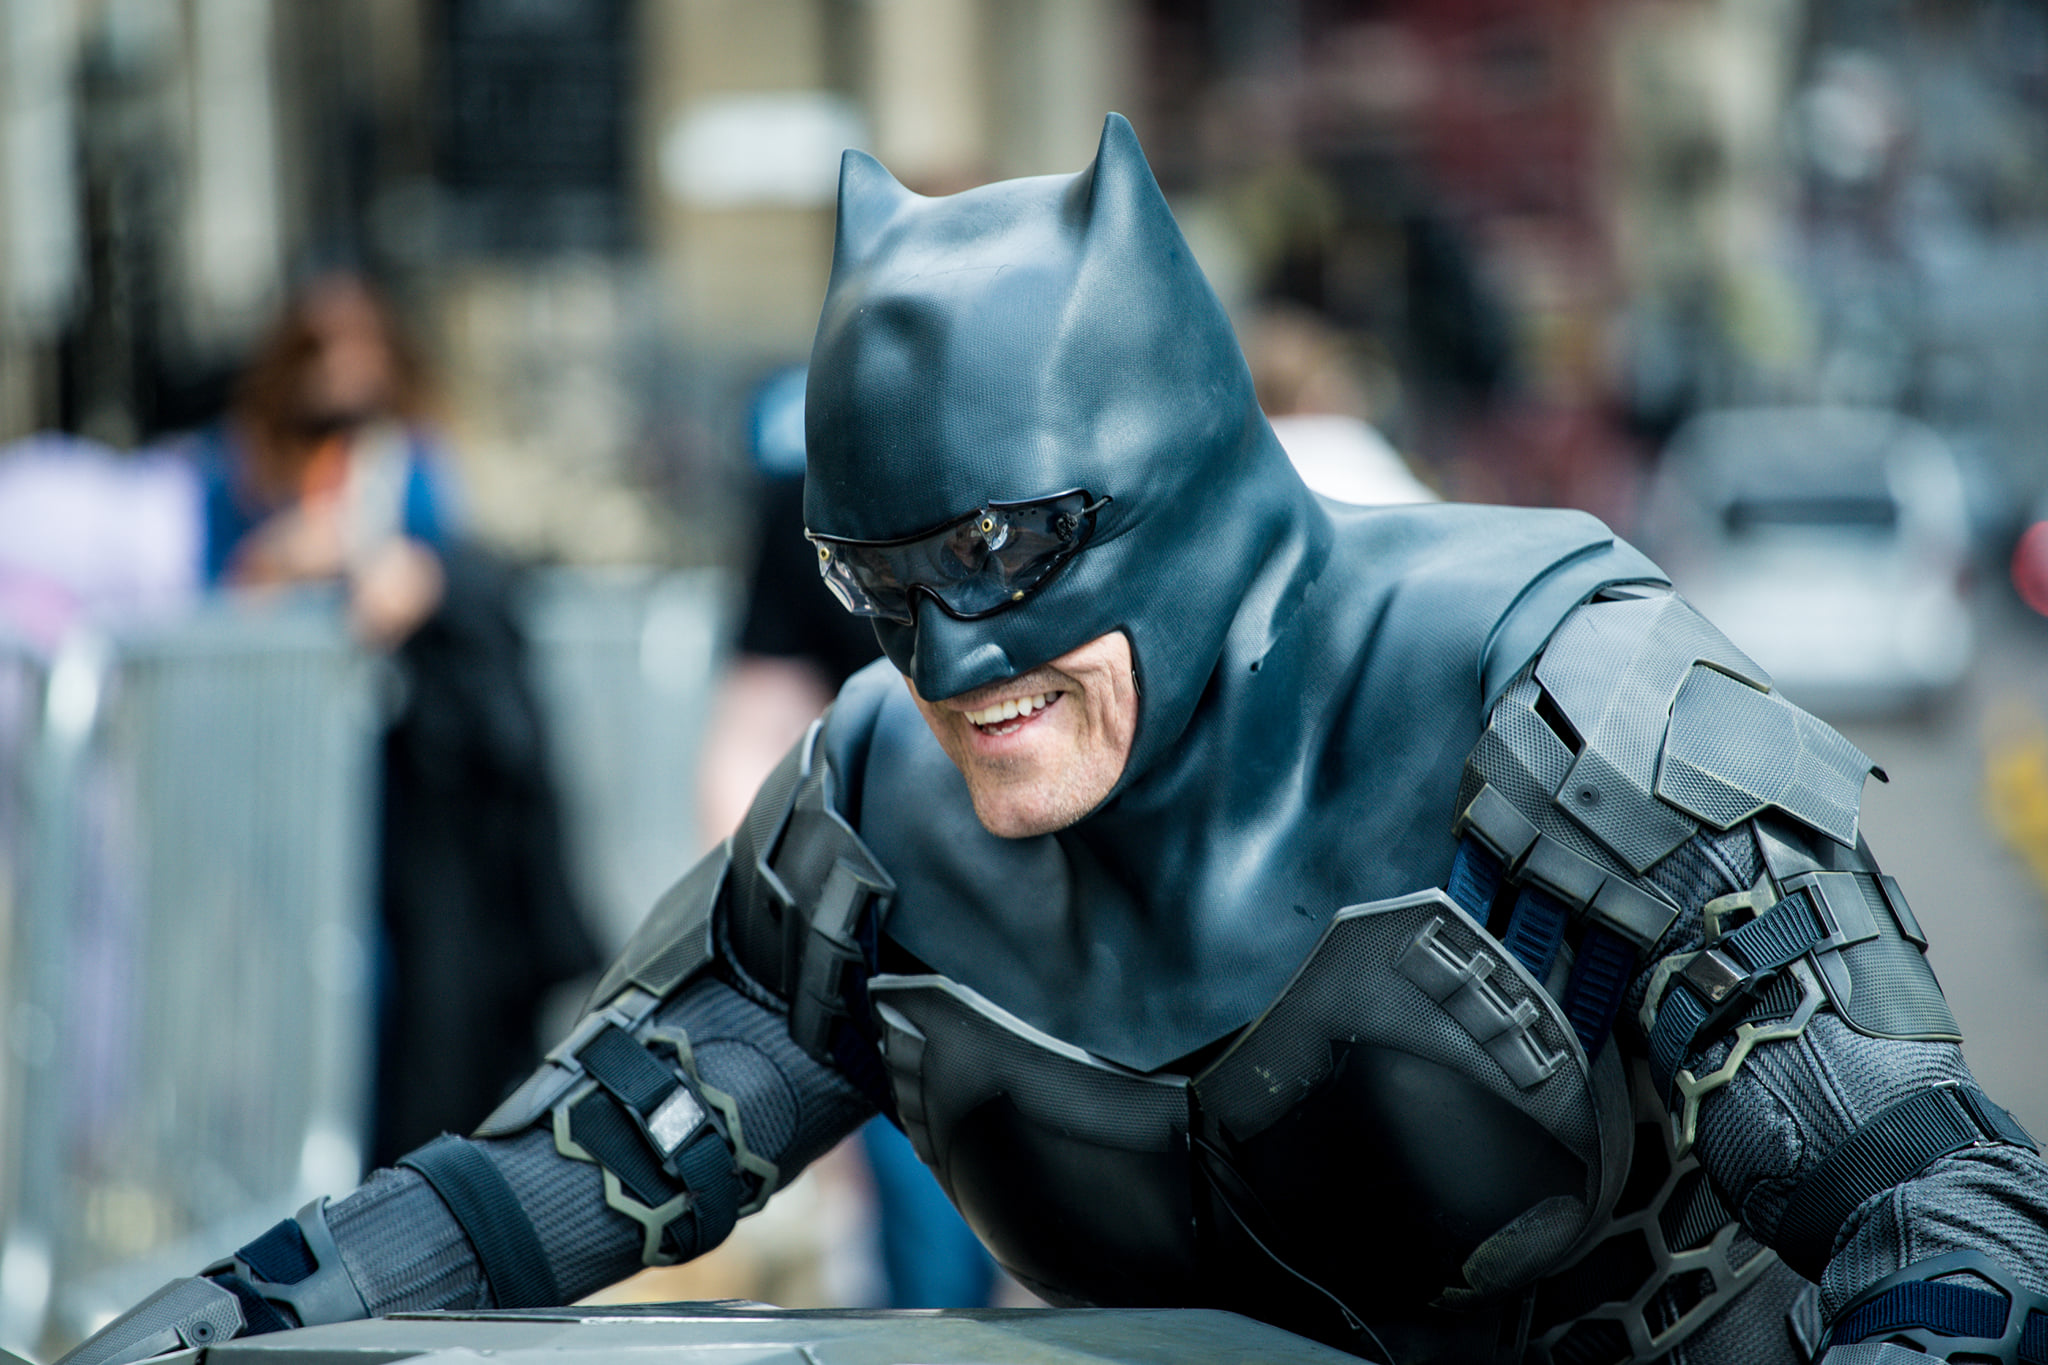 DC Comics character Batman smiles during The Flash filming in Glasgow